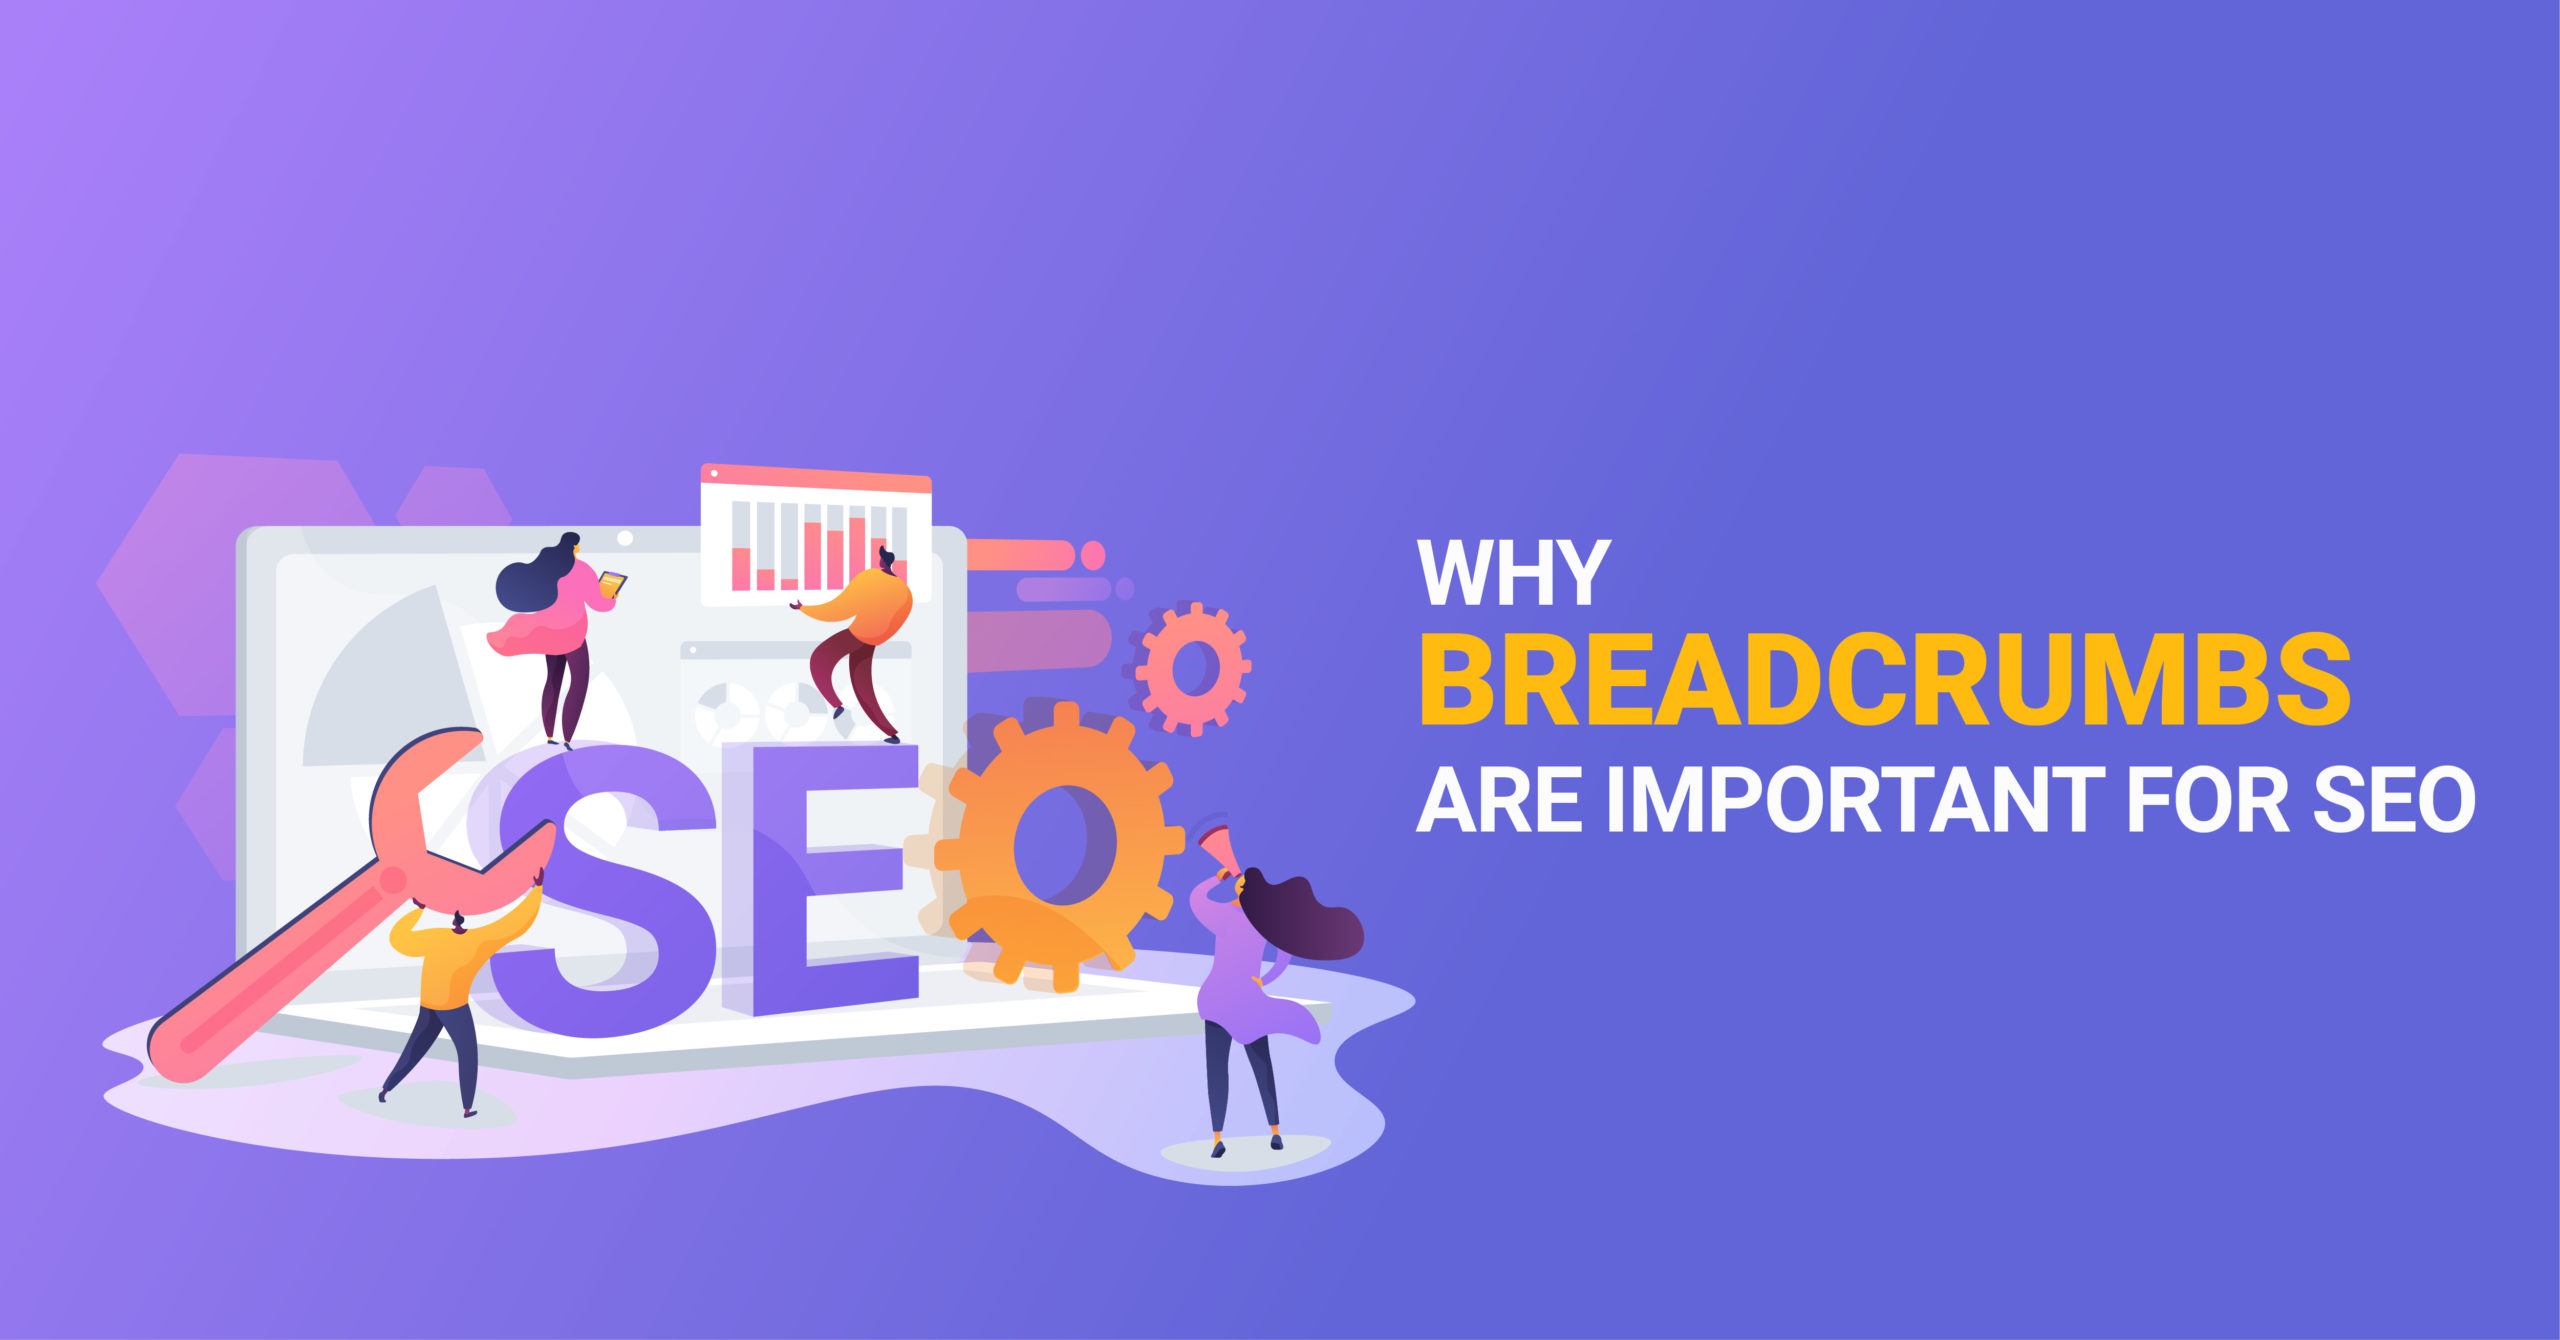 Why Breadcrumbs are important